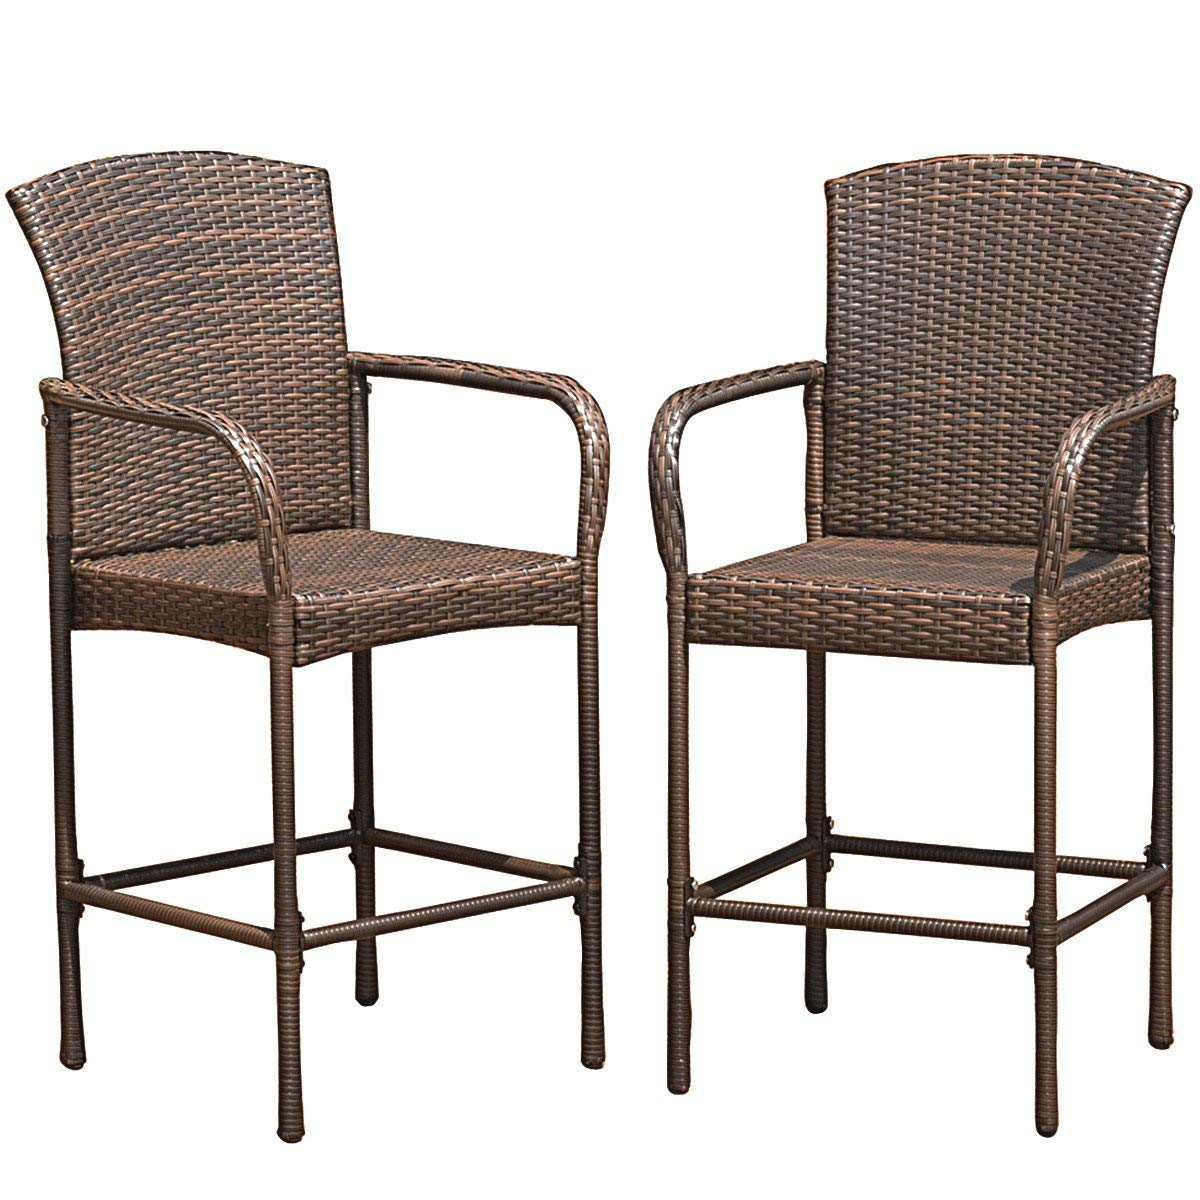 COSTWAY Rattan Wicker Bar Stool Outdoor Backyard Chair Patio Furniture with Armrest Set of 2 by COSTWAY